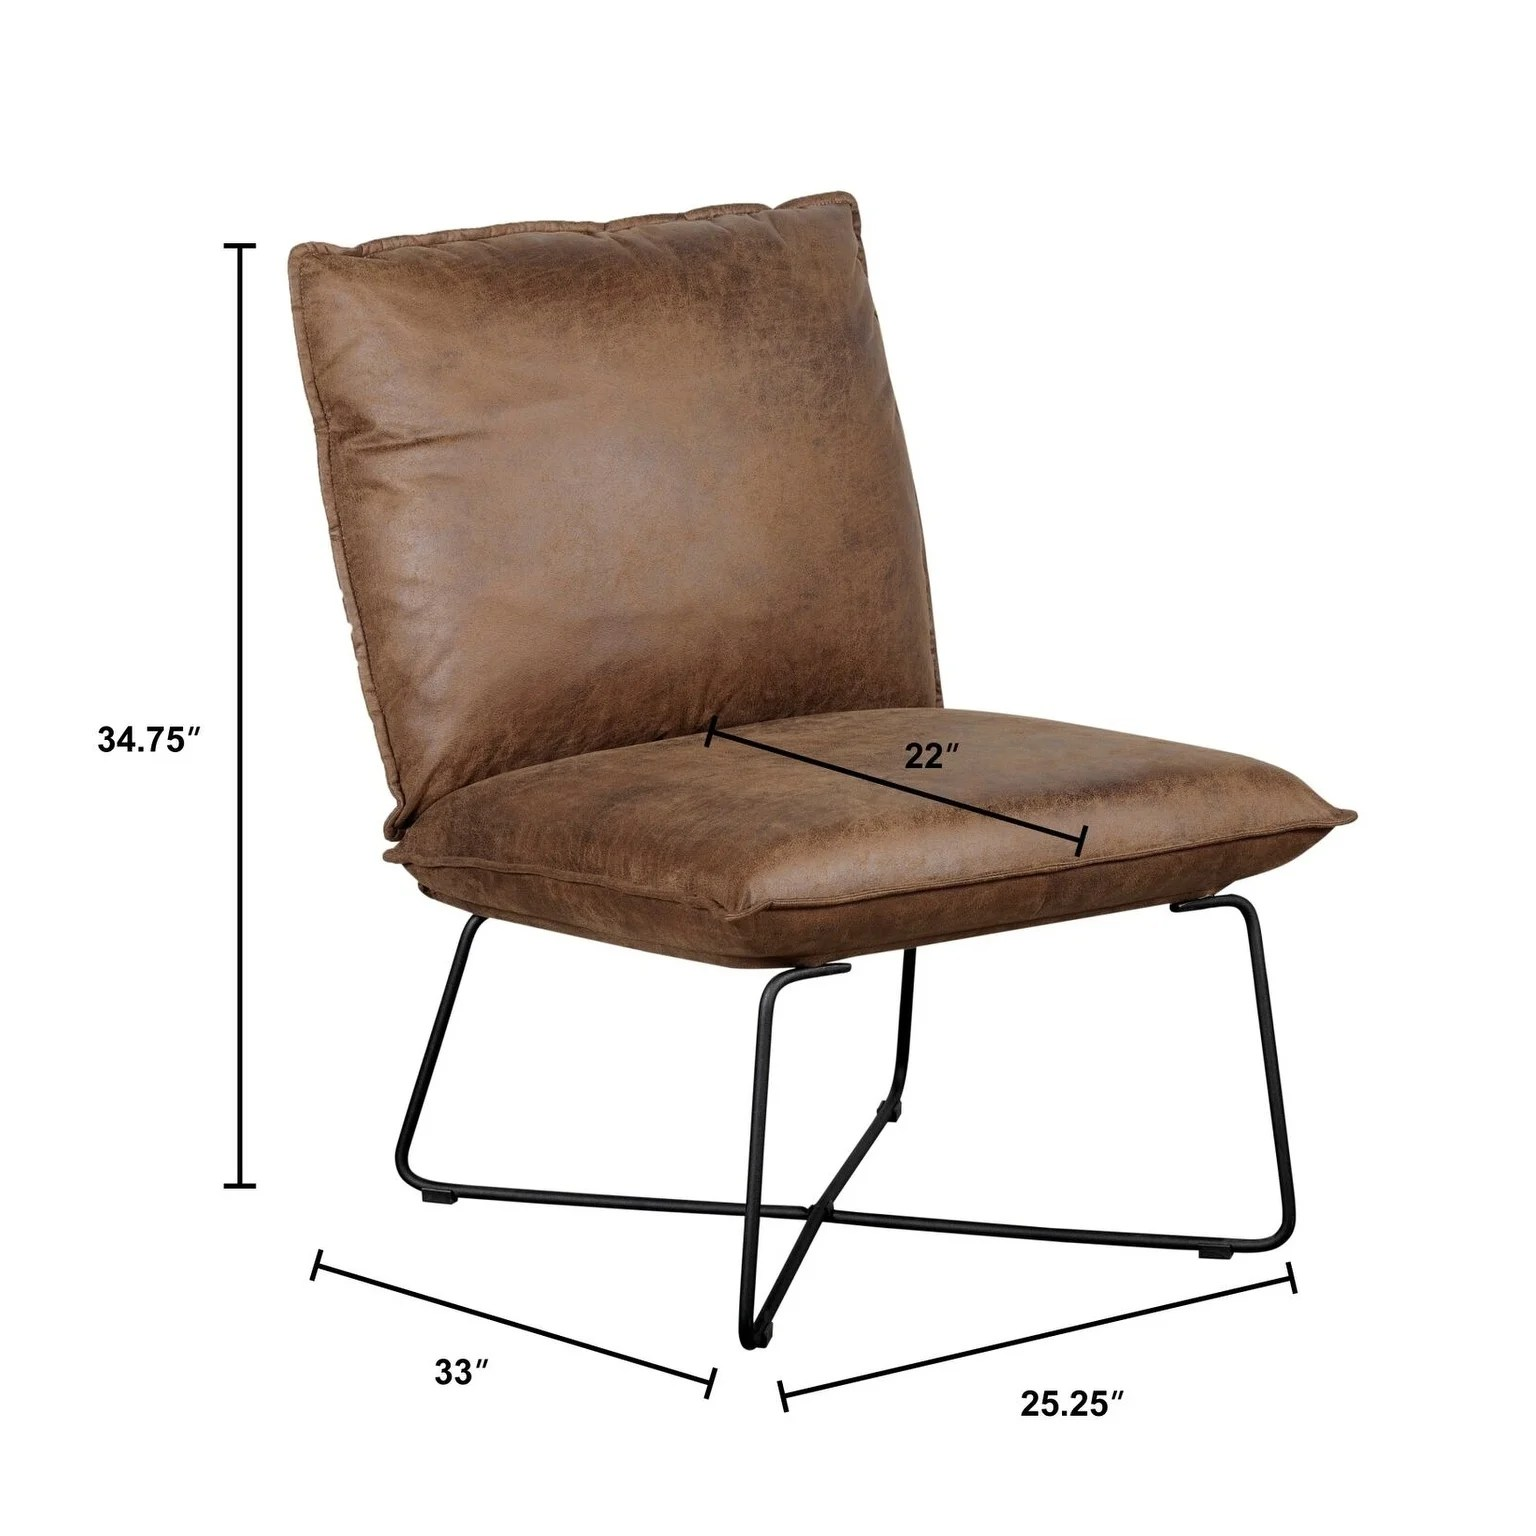 Armless Lounge Chair Tommy Hilfiger Ellington Armless Lounge Chair